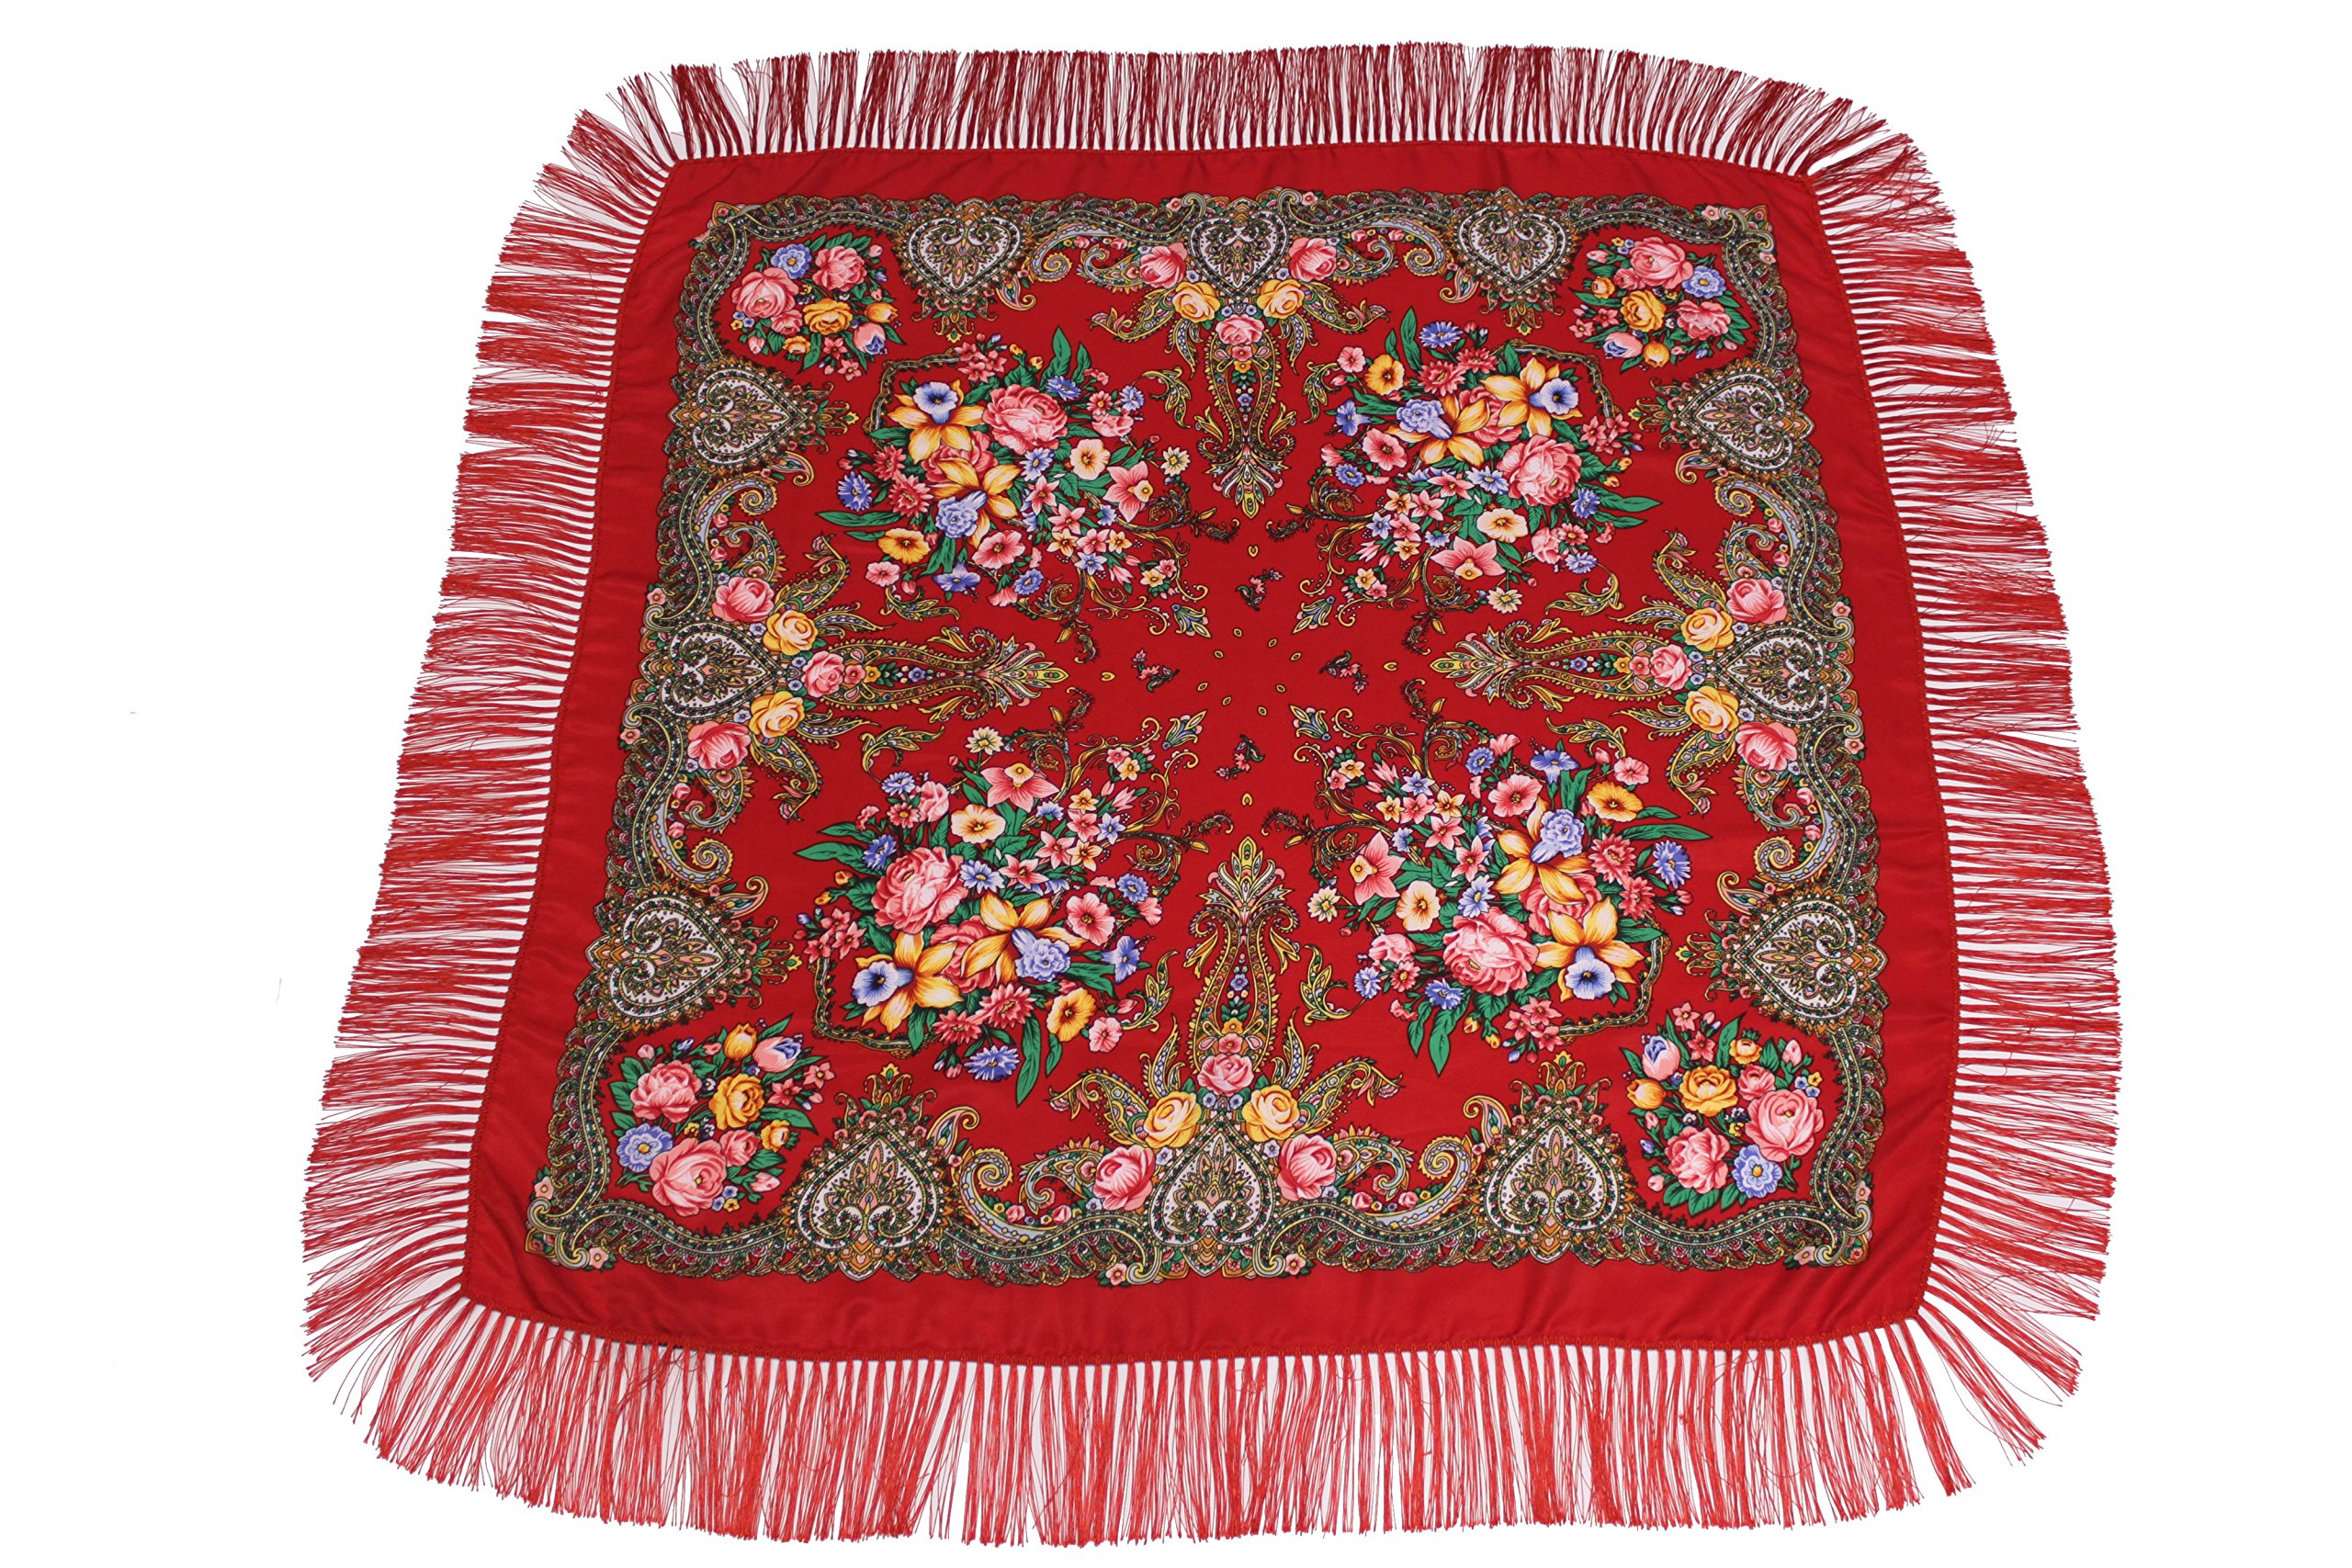 Dzhavael Couture Womans Russian Style Wool Luxury Unique Large Babushka Pashmina Shawl Wraps Scarves with Fringe (Red)